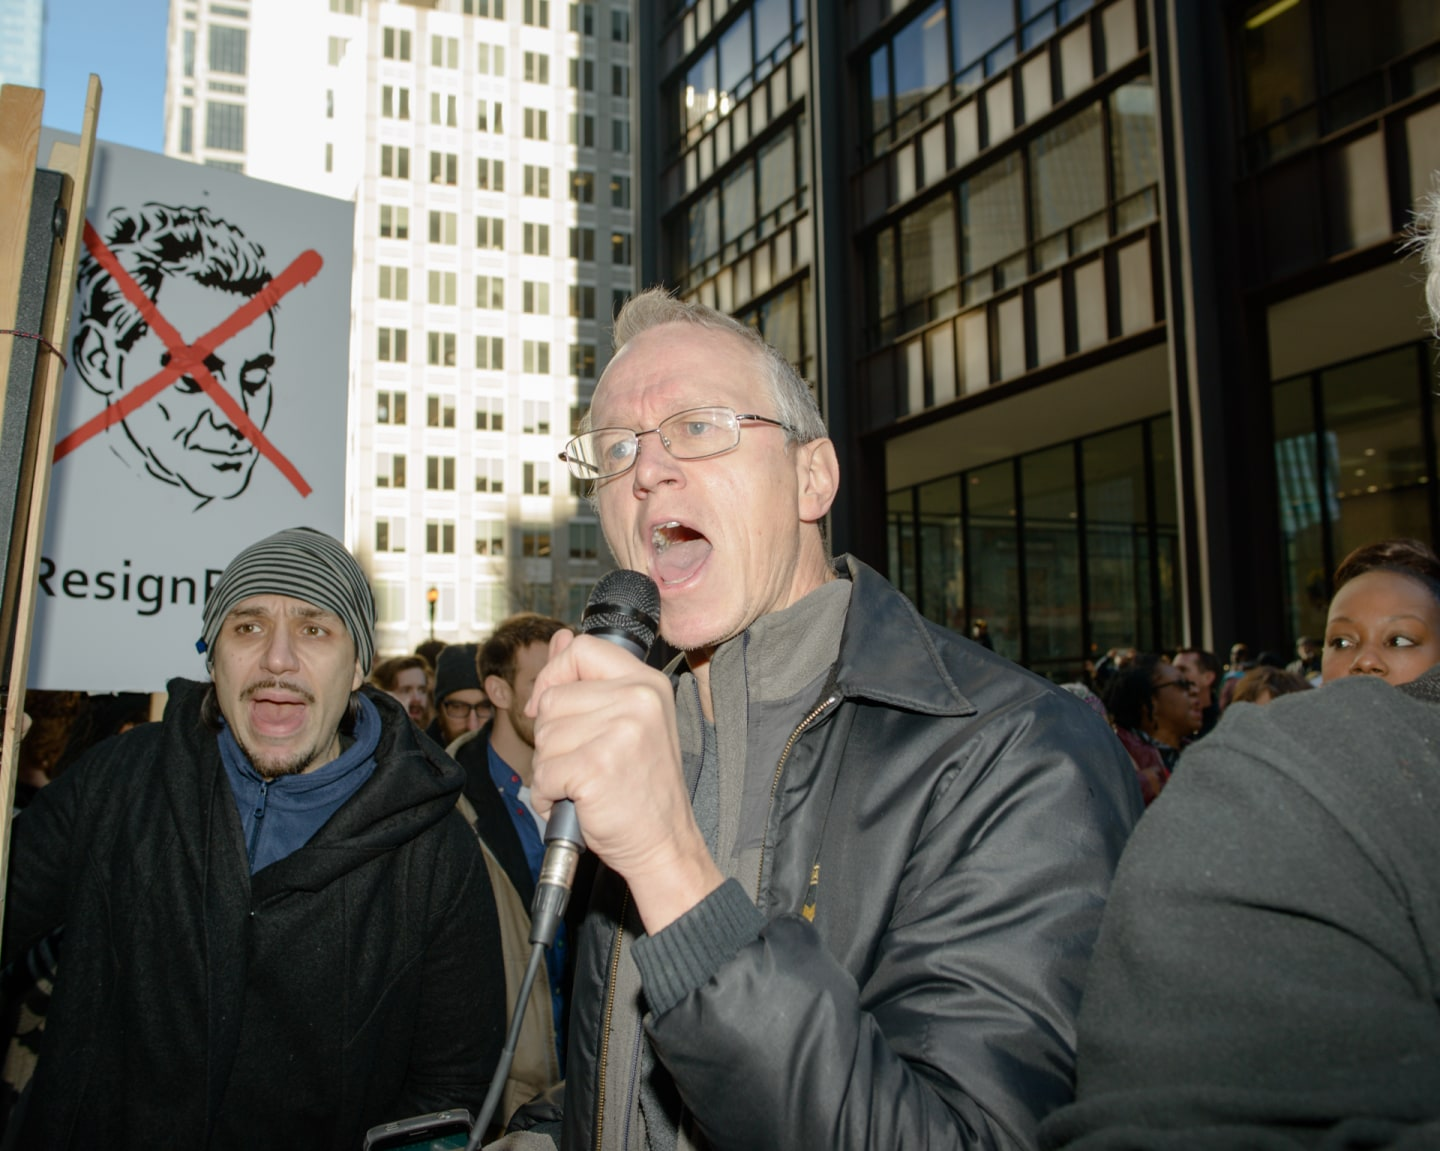 What Chicago's #ResignRahm Protests Really Looked Like